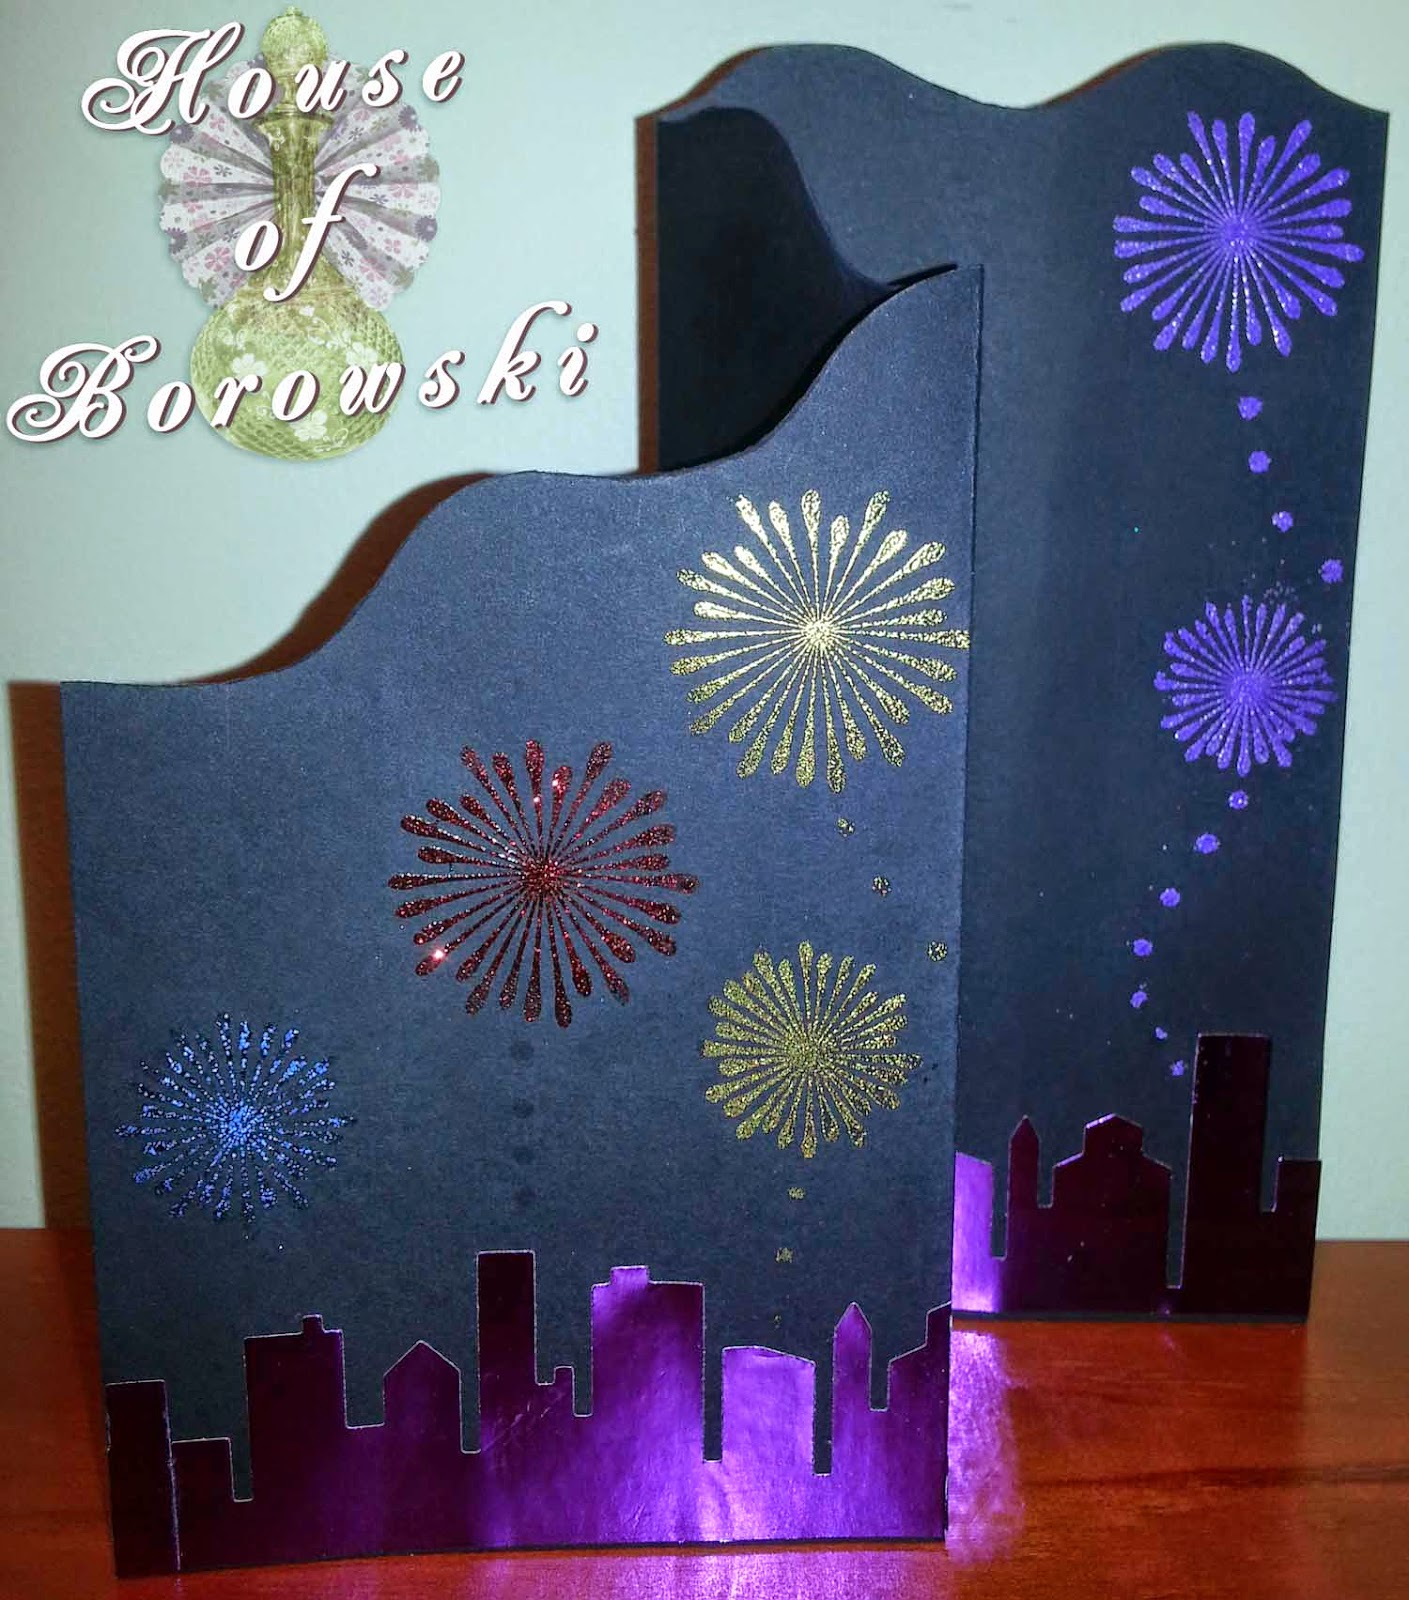 House of Borowski,memory box cityscape silhouette, Cuttlebug, allison ellis design, judikins, Gina K Design Stamp, DCWR,